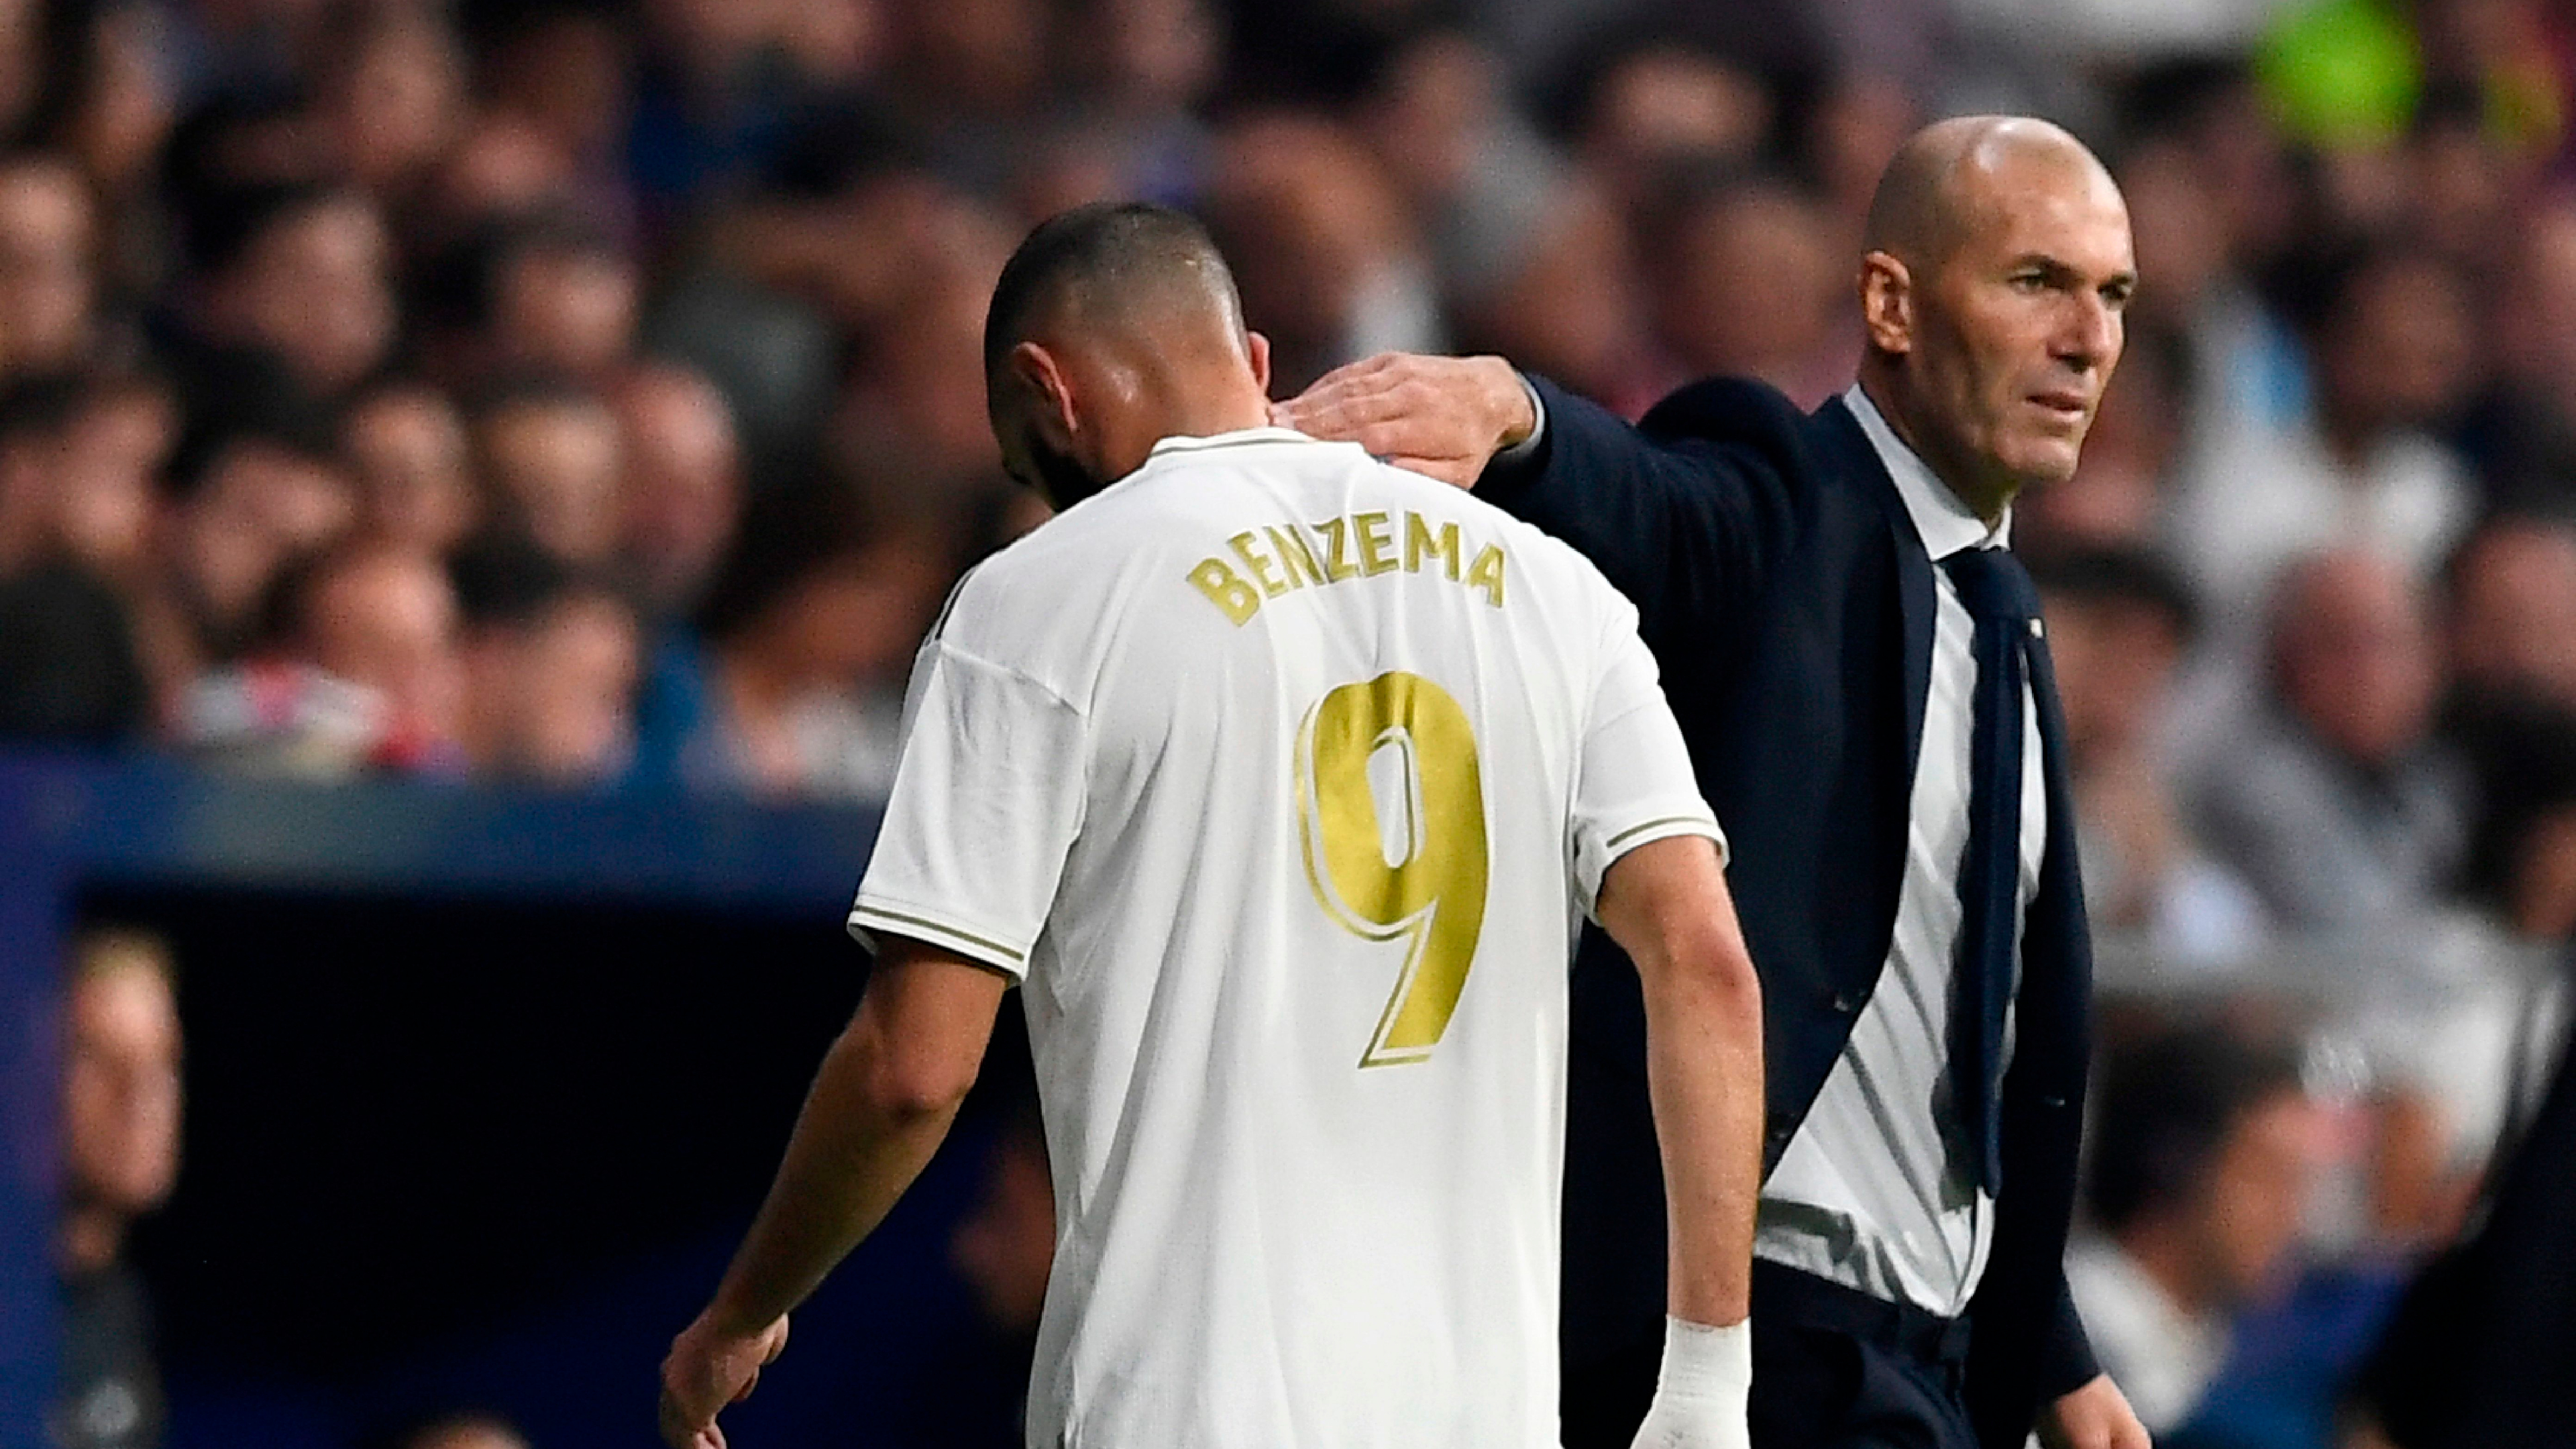 Benzema should definitely be called up by France - Zidane